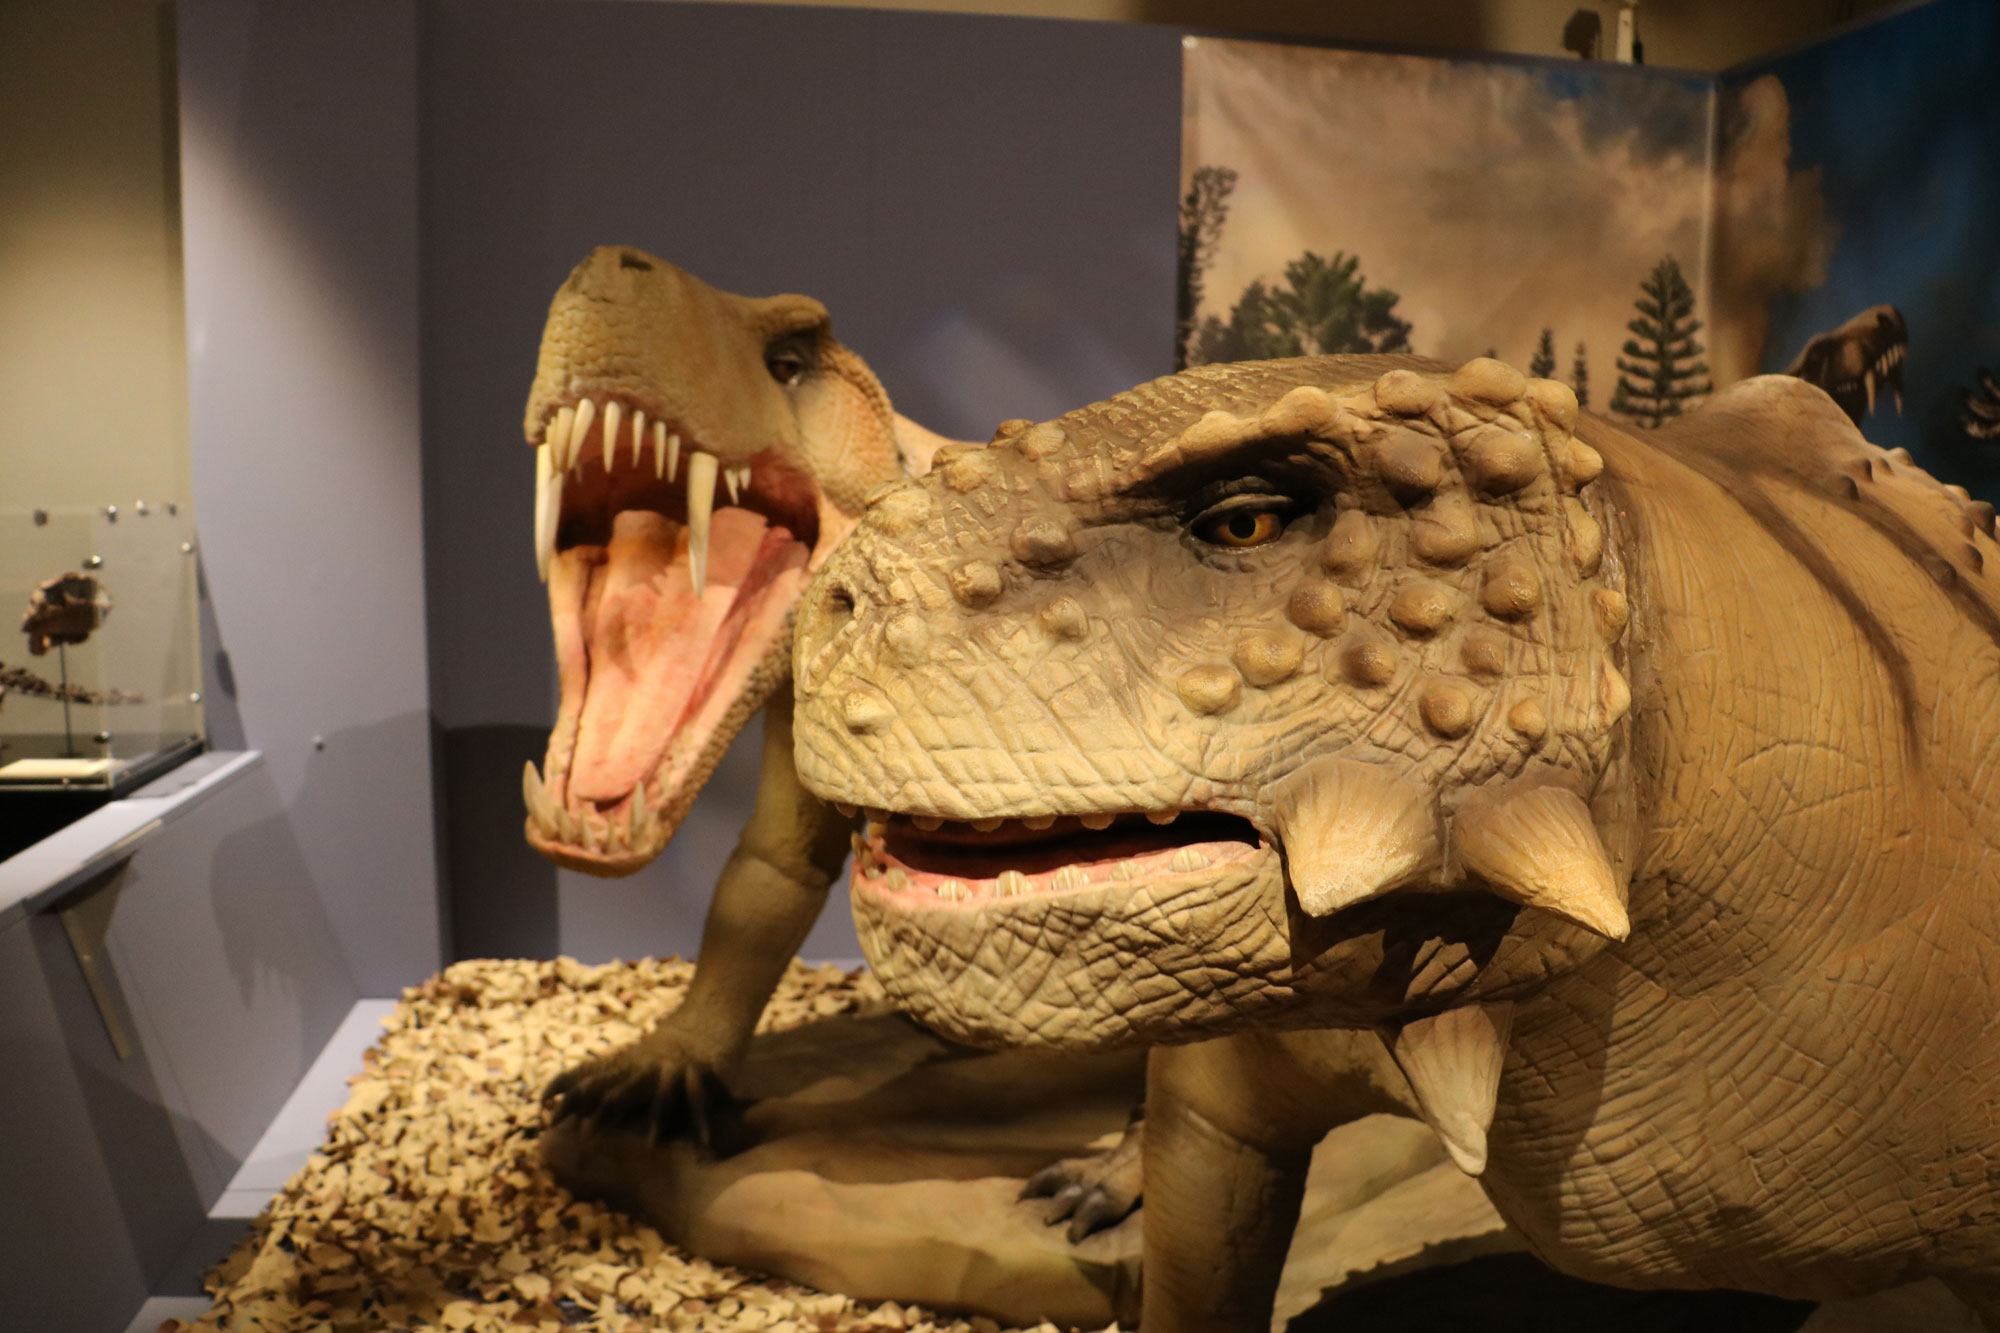 Two prehistoric creatures with large teeth and face spikes. One has its mouth open in a roar. They are animatronix figures